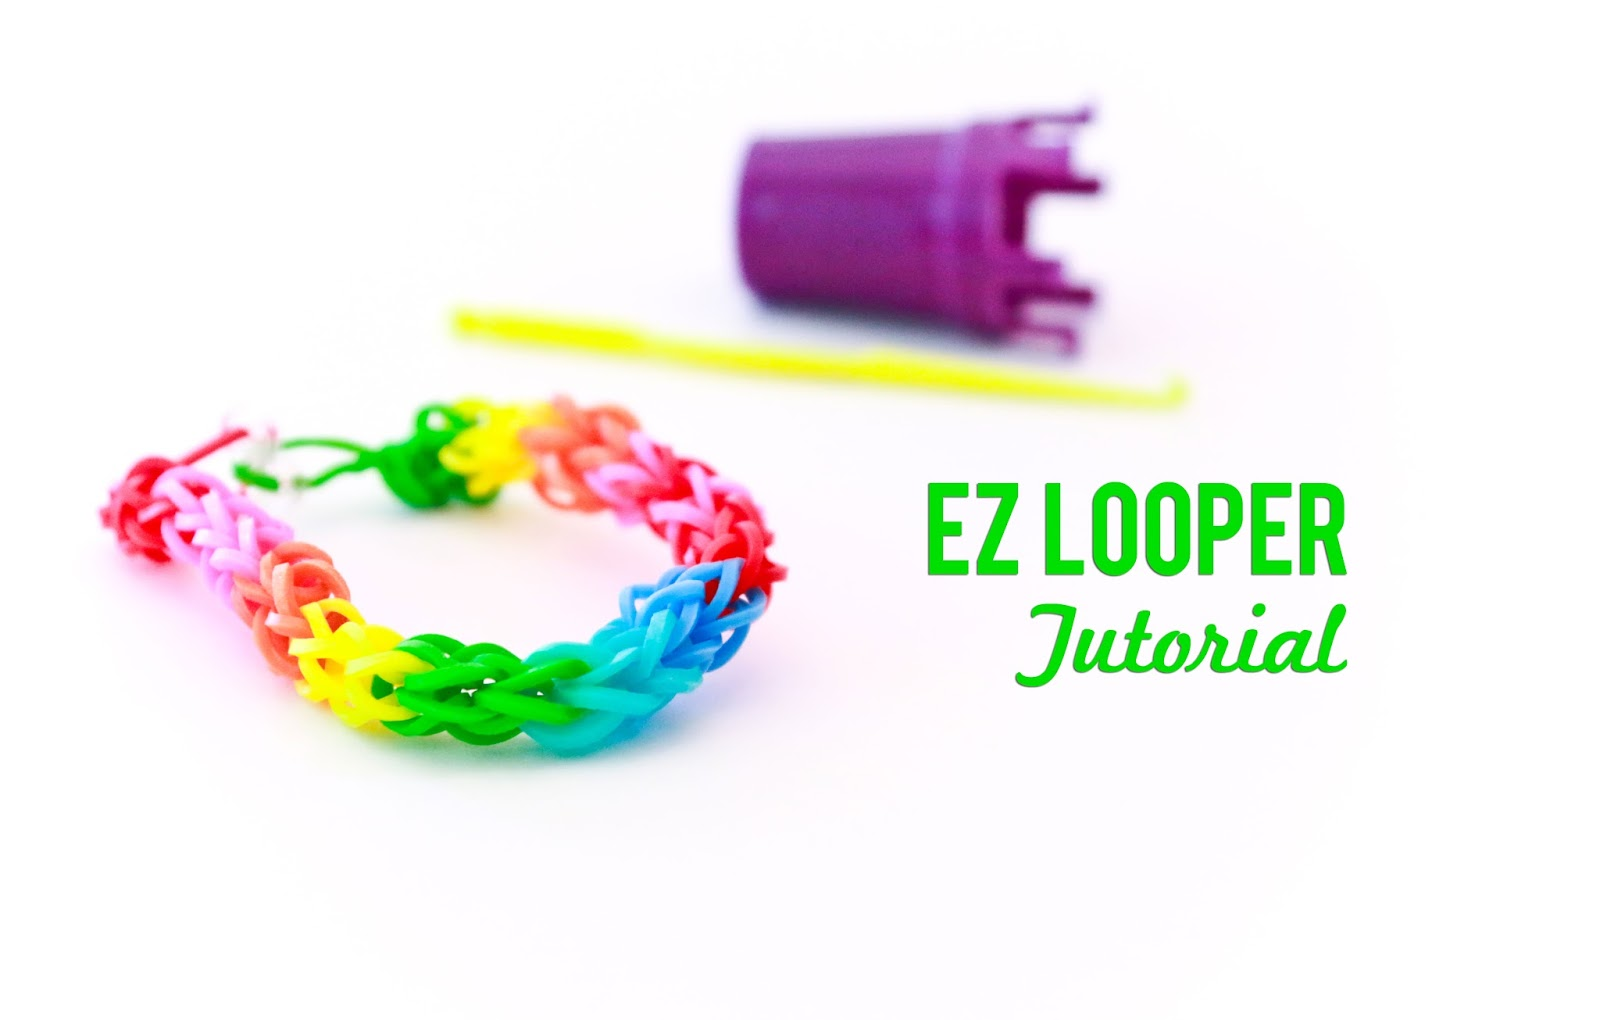 EZ Looper Video Tutorial @craftsavvy @createoften #ezlooper #rubberbandbracelets #loombands #diy #craftwarehouse